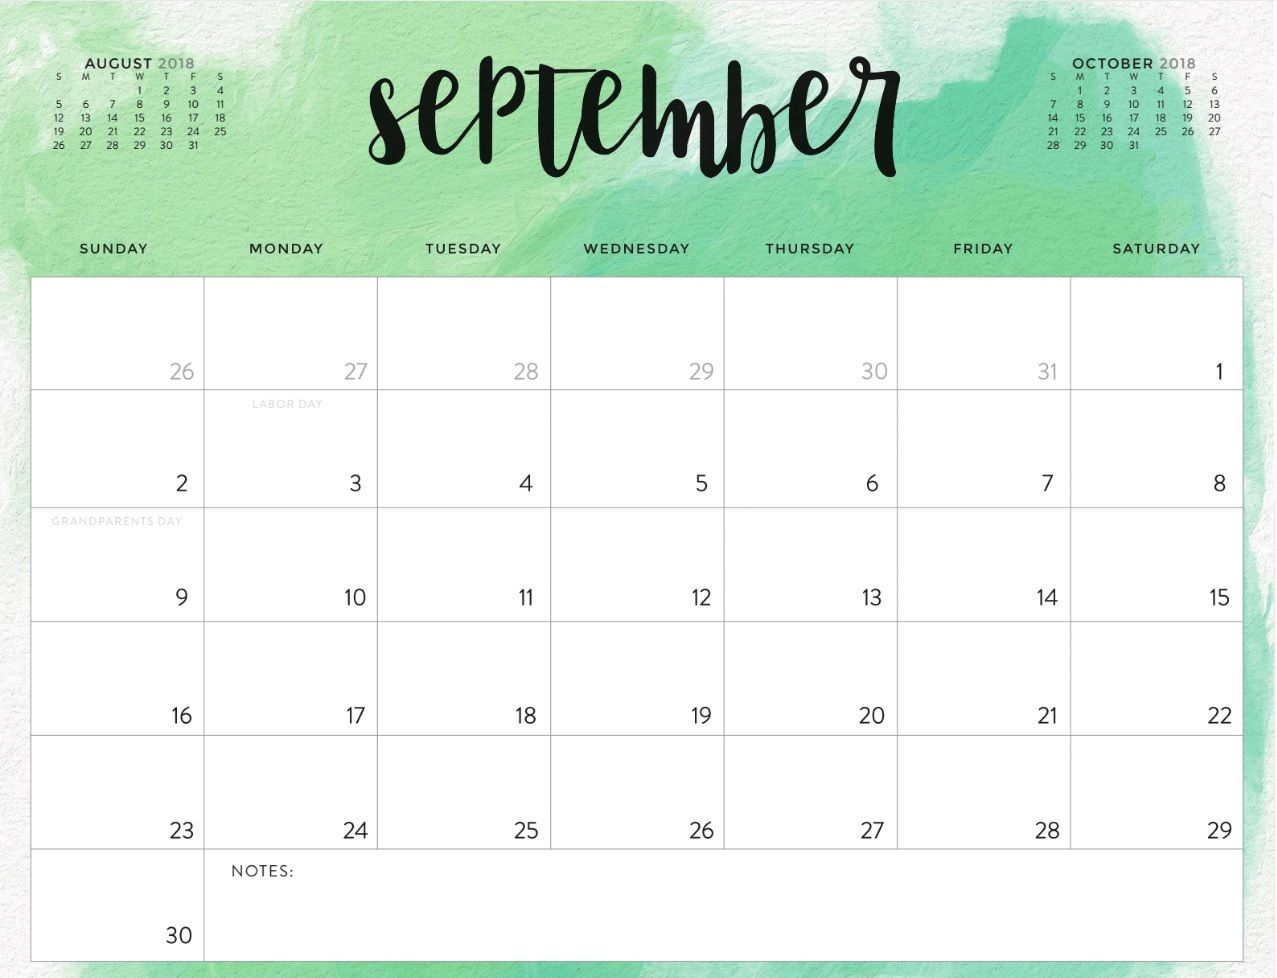 september 2018 calendar printable waterproof